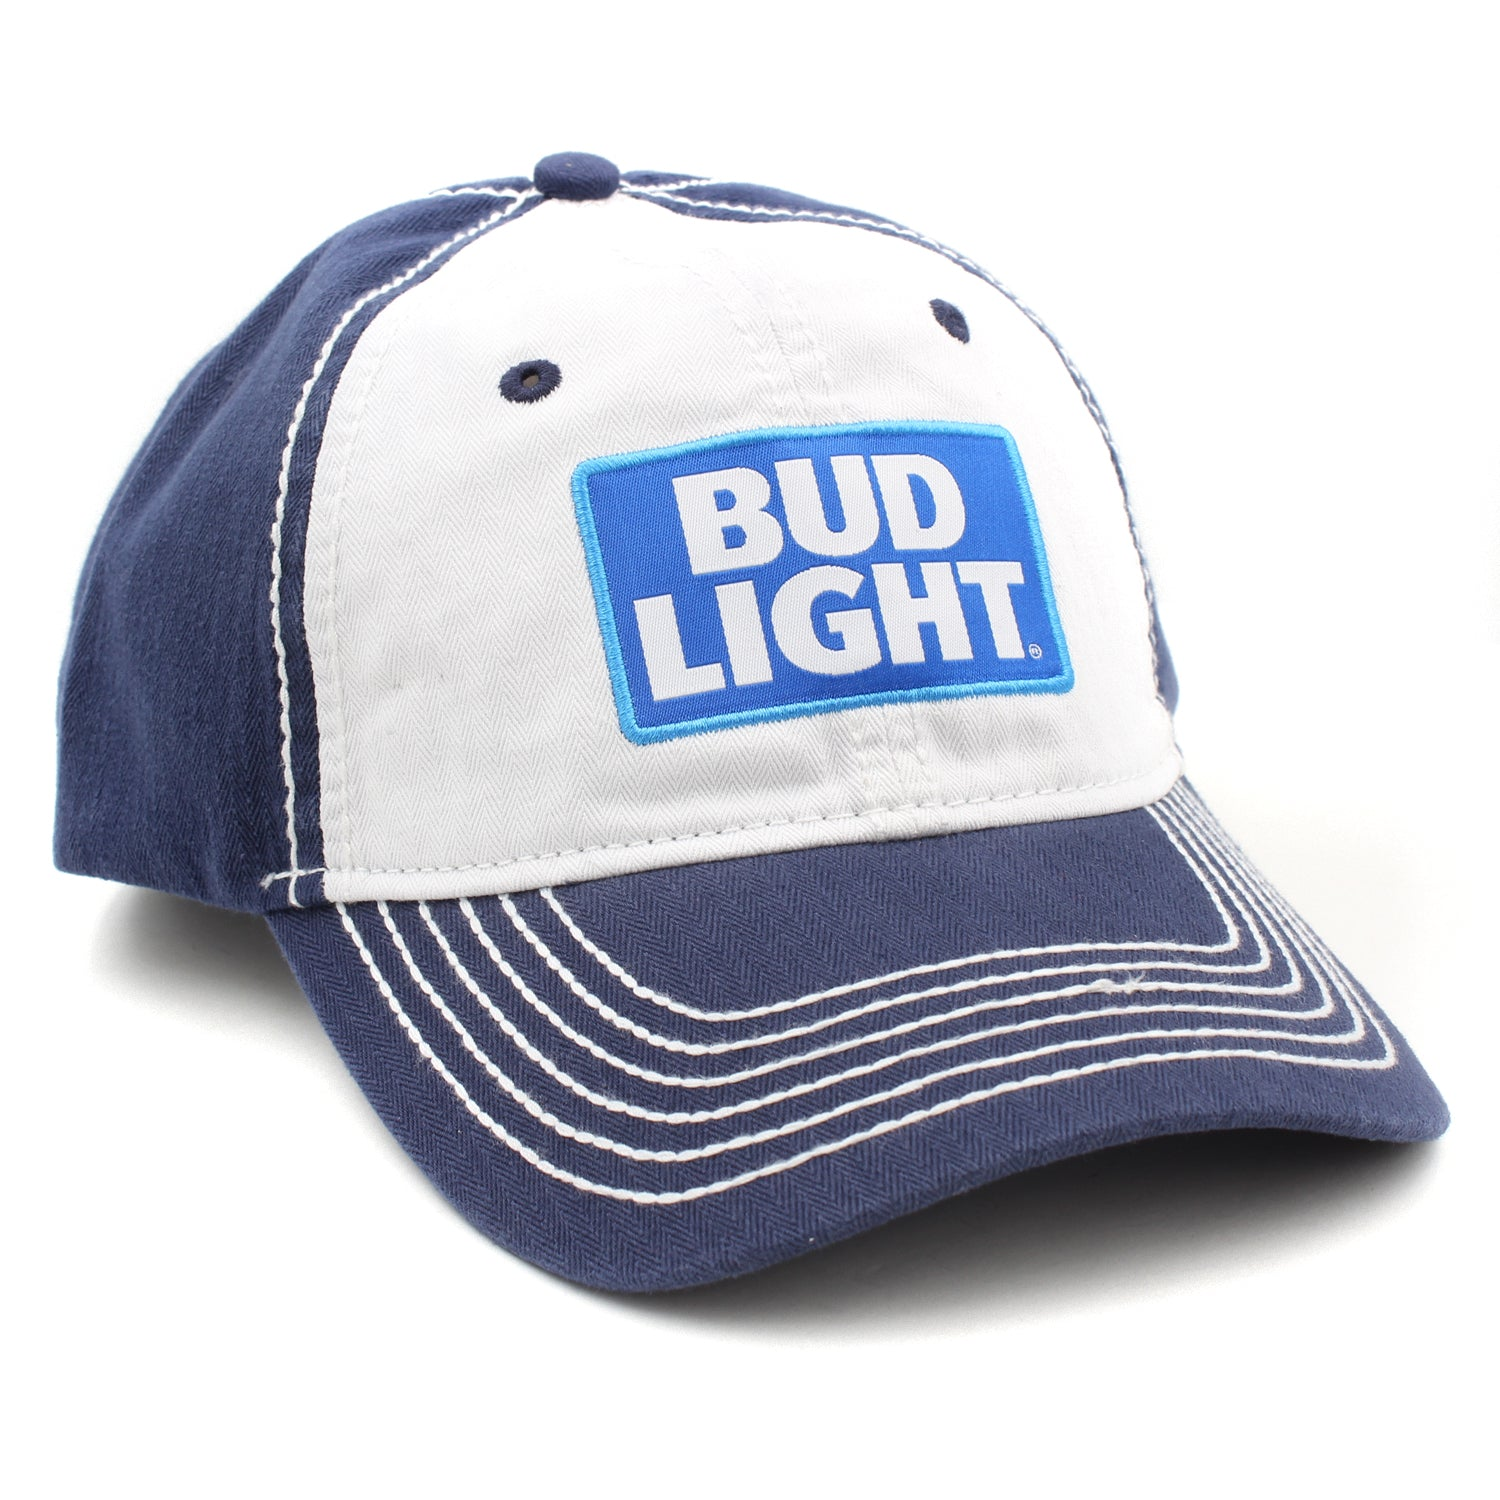 b65c4680310 H3 Headwear Bud Light Big Patch Adjustable Hat. Tap to expand